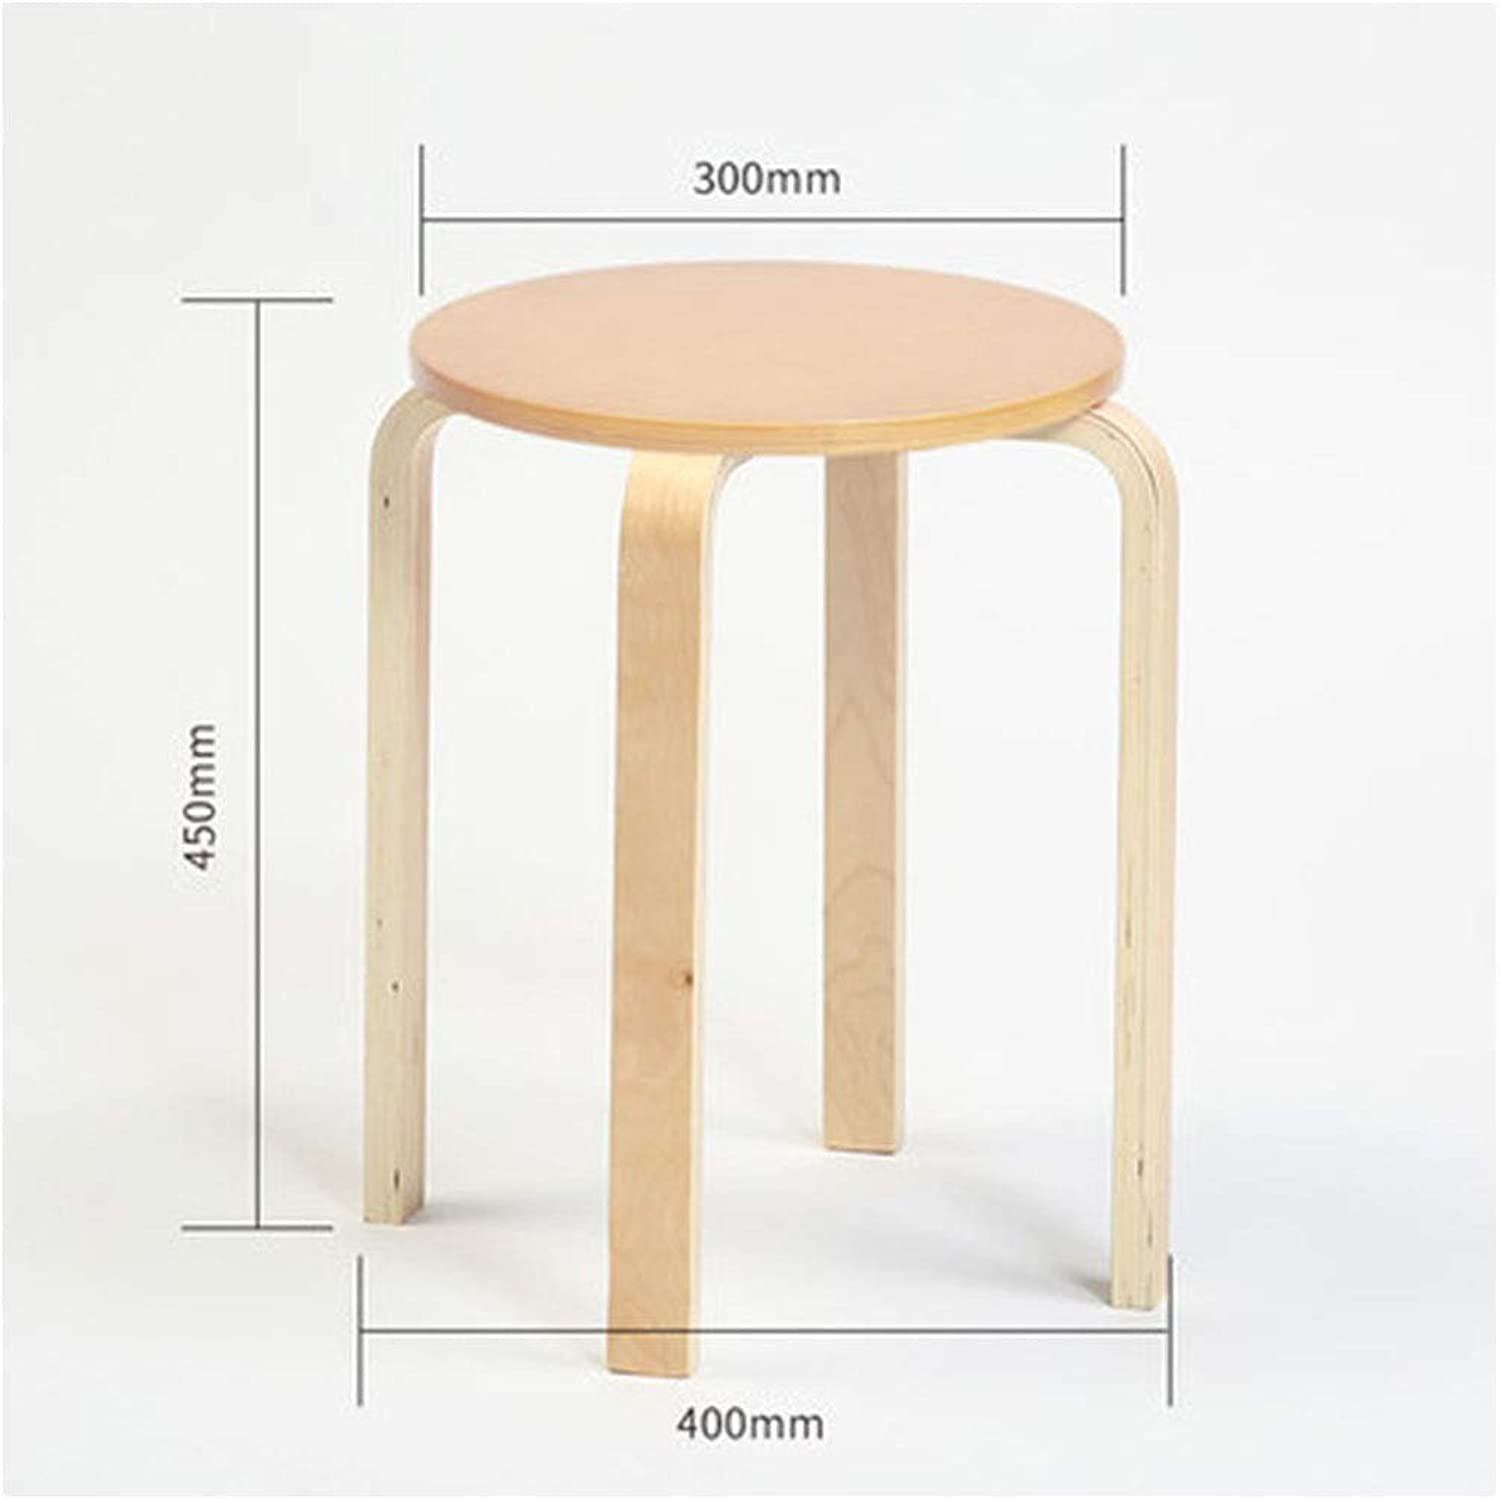 Stools- Wooden Bench- Stool Fashion Creative Home Stool Small Bench Wooden Bench Dining Table Stool Living Room Stool HATHOR-23 (color   C)